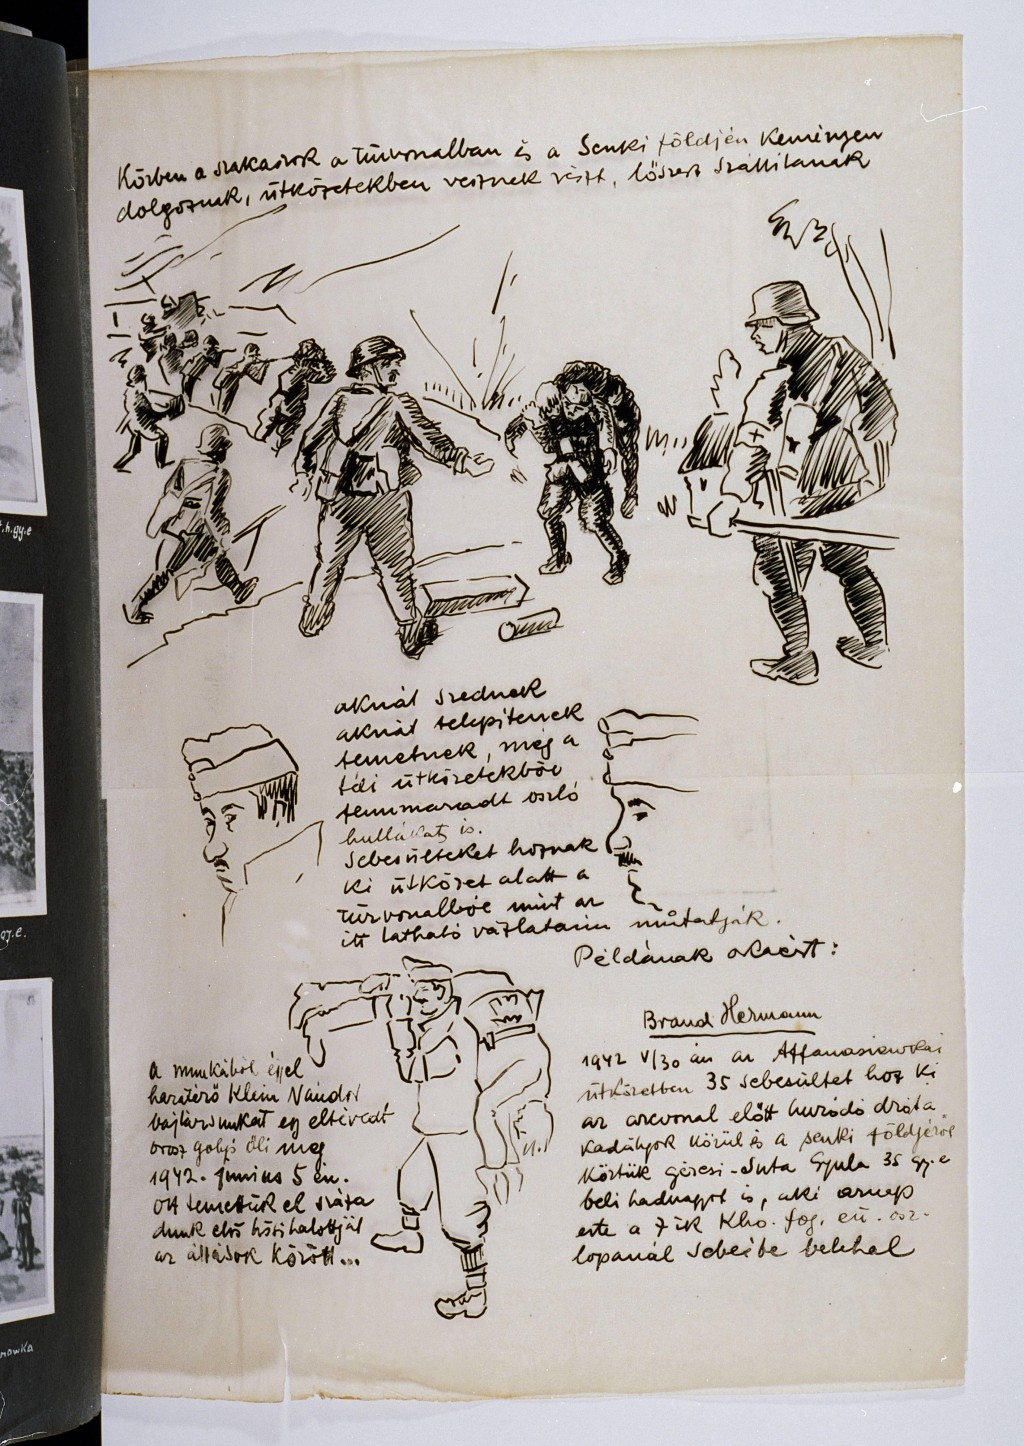 "<p>A page of drawings illustrating the contribution of Jewish Labor Servicemen to the war effort. At the top: ""The different platoons work hard at the battle front and in the no man's land [between the armies]. They actively participate in the fighting. They carry ammunition to the Hungarian soldiers."" In the middle: ""They defuse land mines. They bury the dead, including those that had been left unburied from the winter campaign. They carry soldiers wounded on the front lines to safety."" At the bottom: ""For example, [Jewish Labor Serviceman] Herman Brand carried 35 wounded soldiers from the barbed wire barricades and from no man's land on May 30, 1942 during the Afanasyevica skirmish. Among those he carried was Gyula Gercsi-Suta, age 35, a lieutenant, who succumbed to his wounds at the field hospital that evening."" [Photograph #58014]</p>"